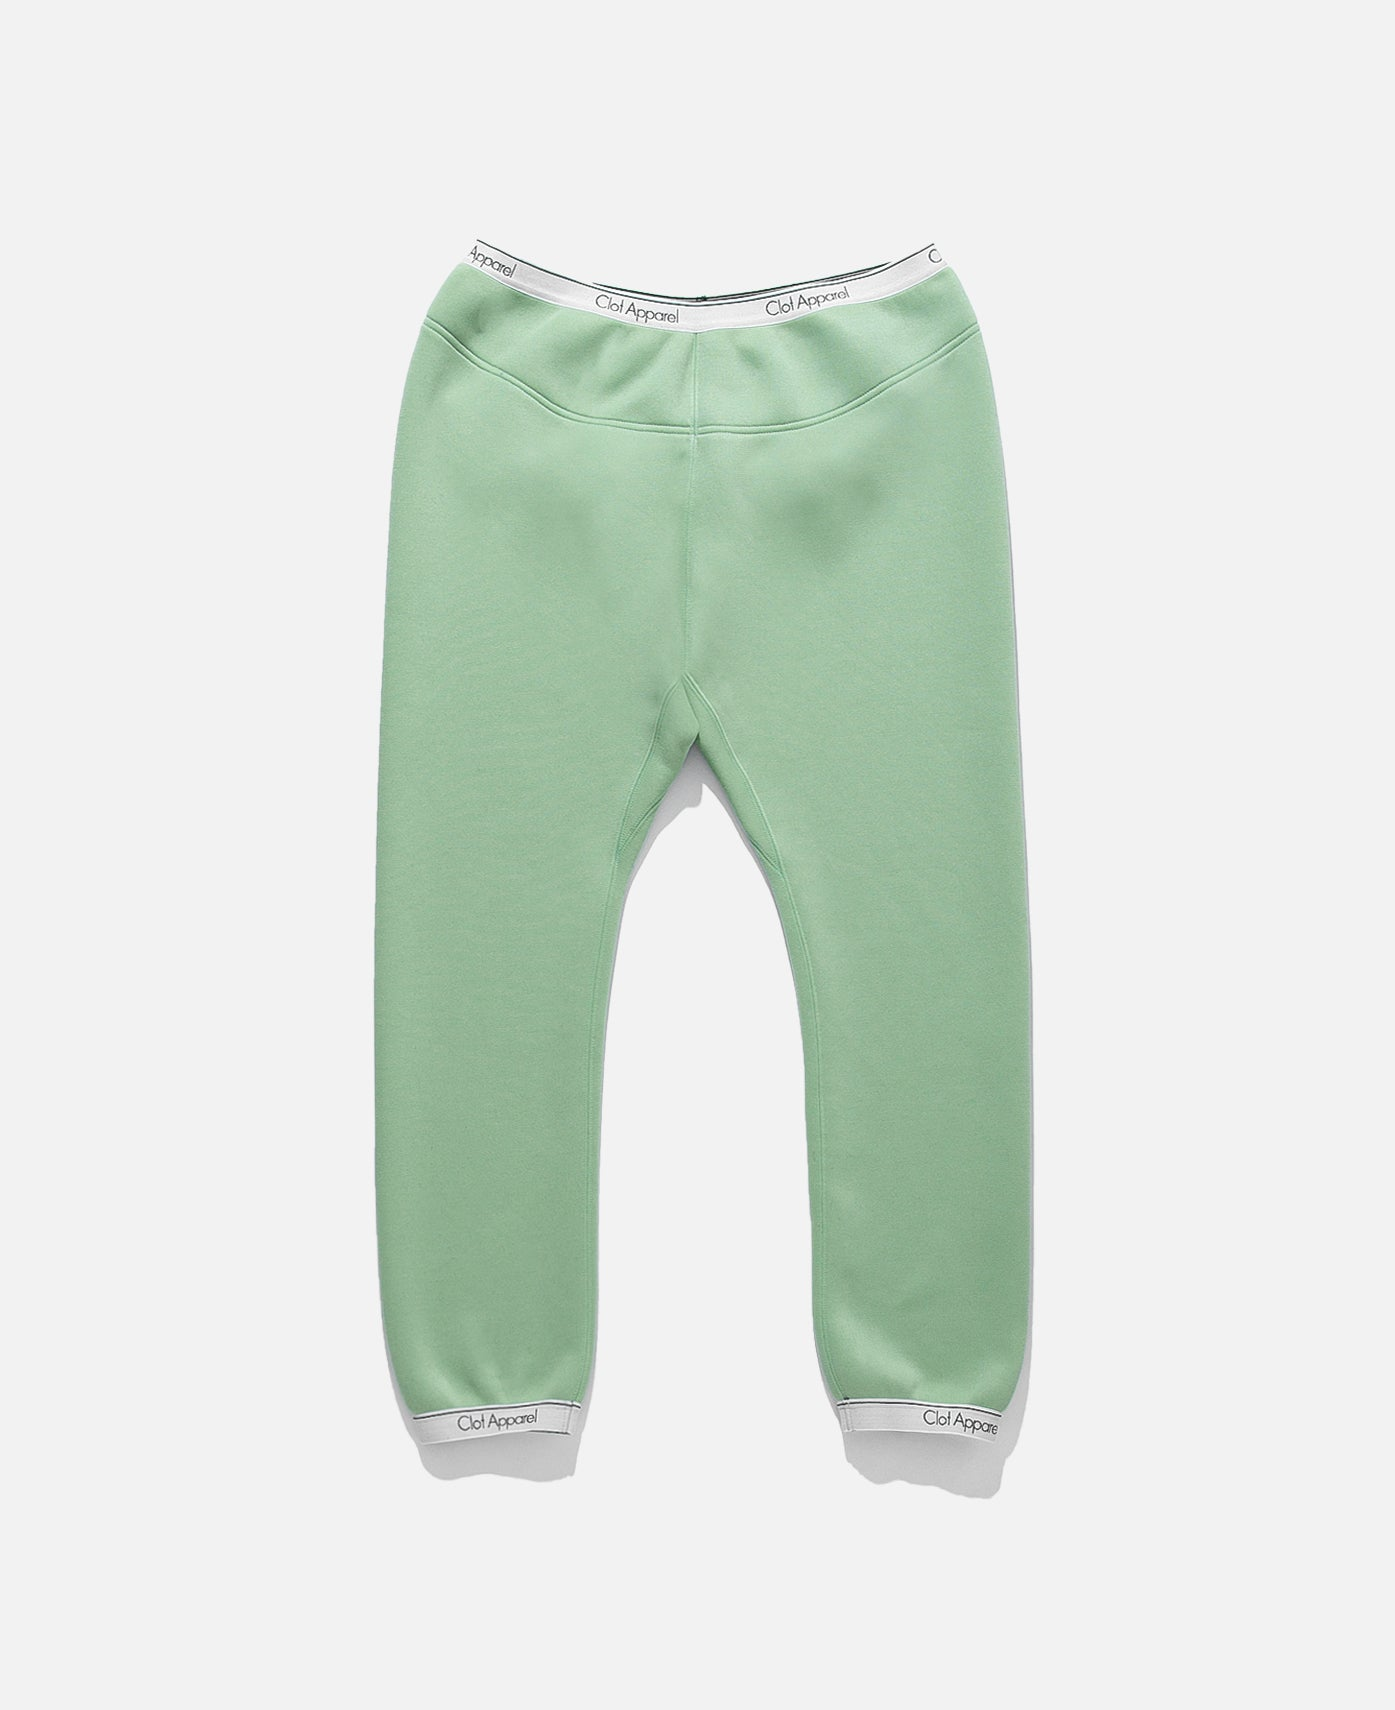 CLOT Apparel Elastic Pants (Green)